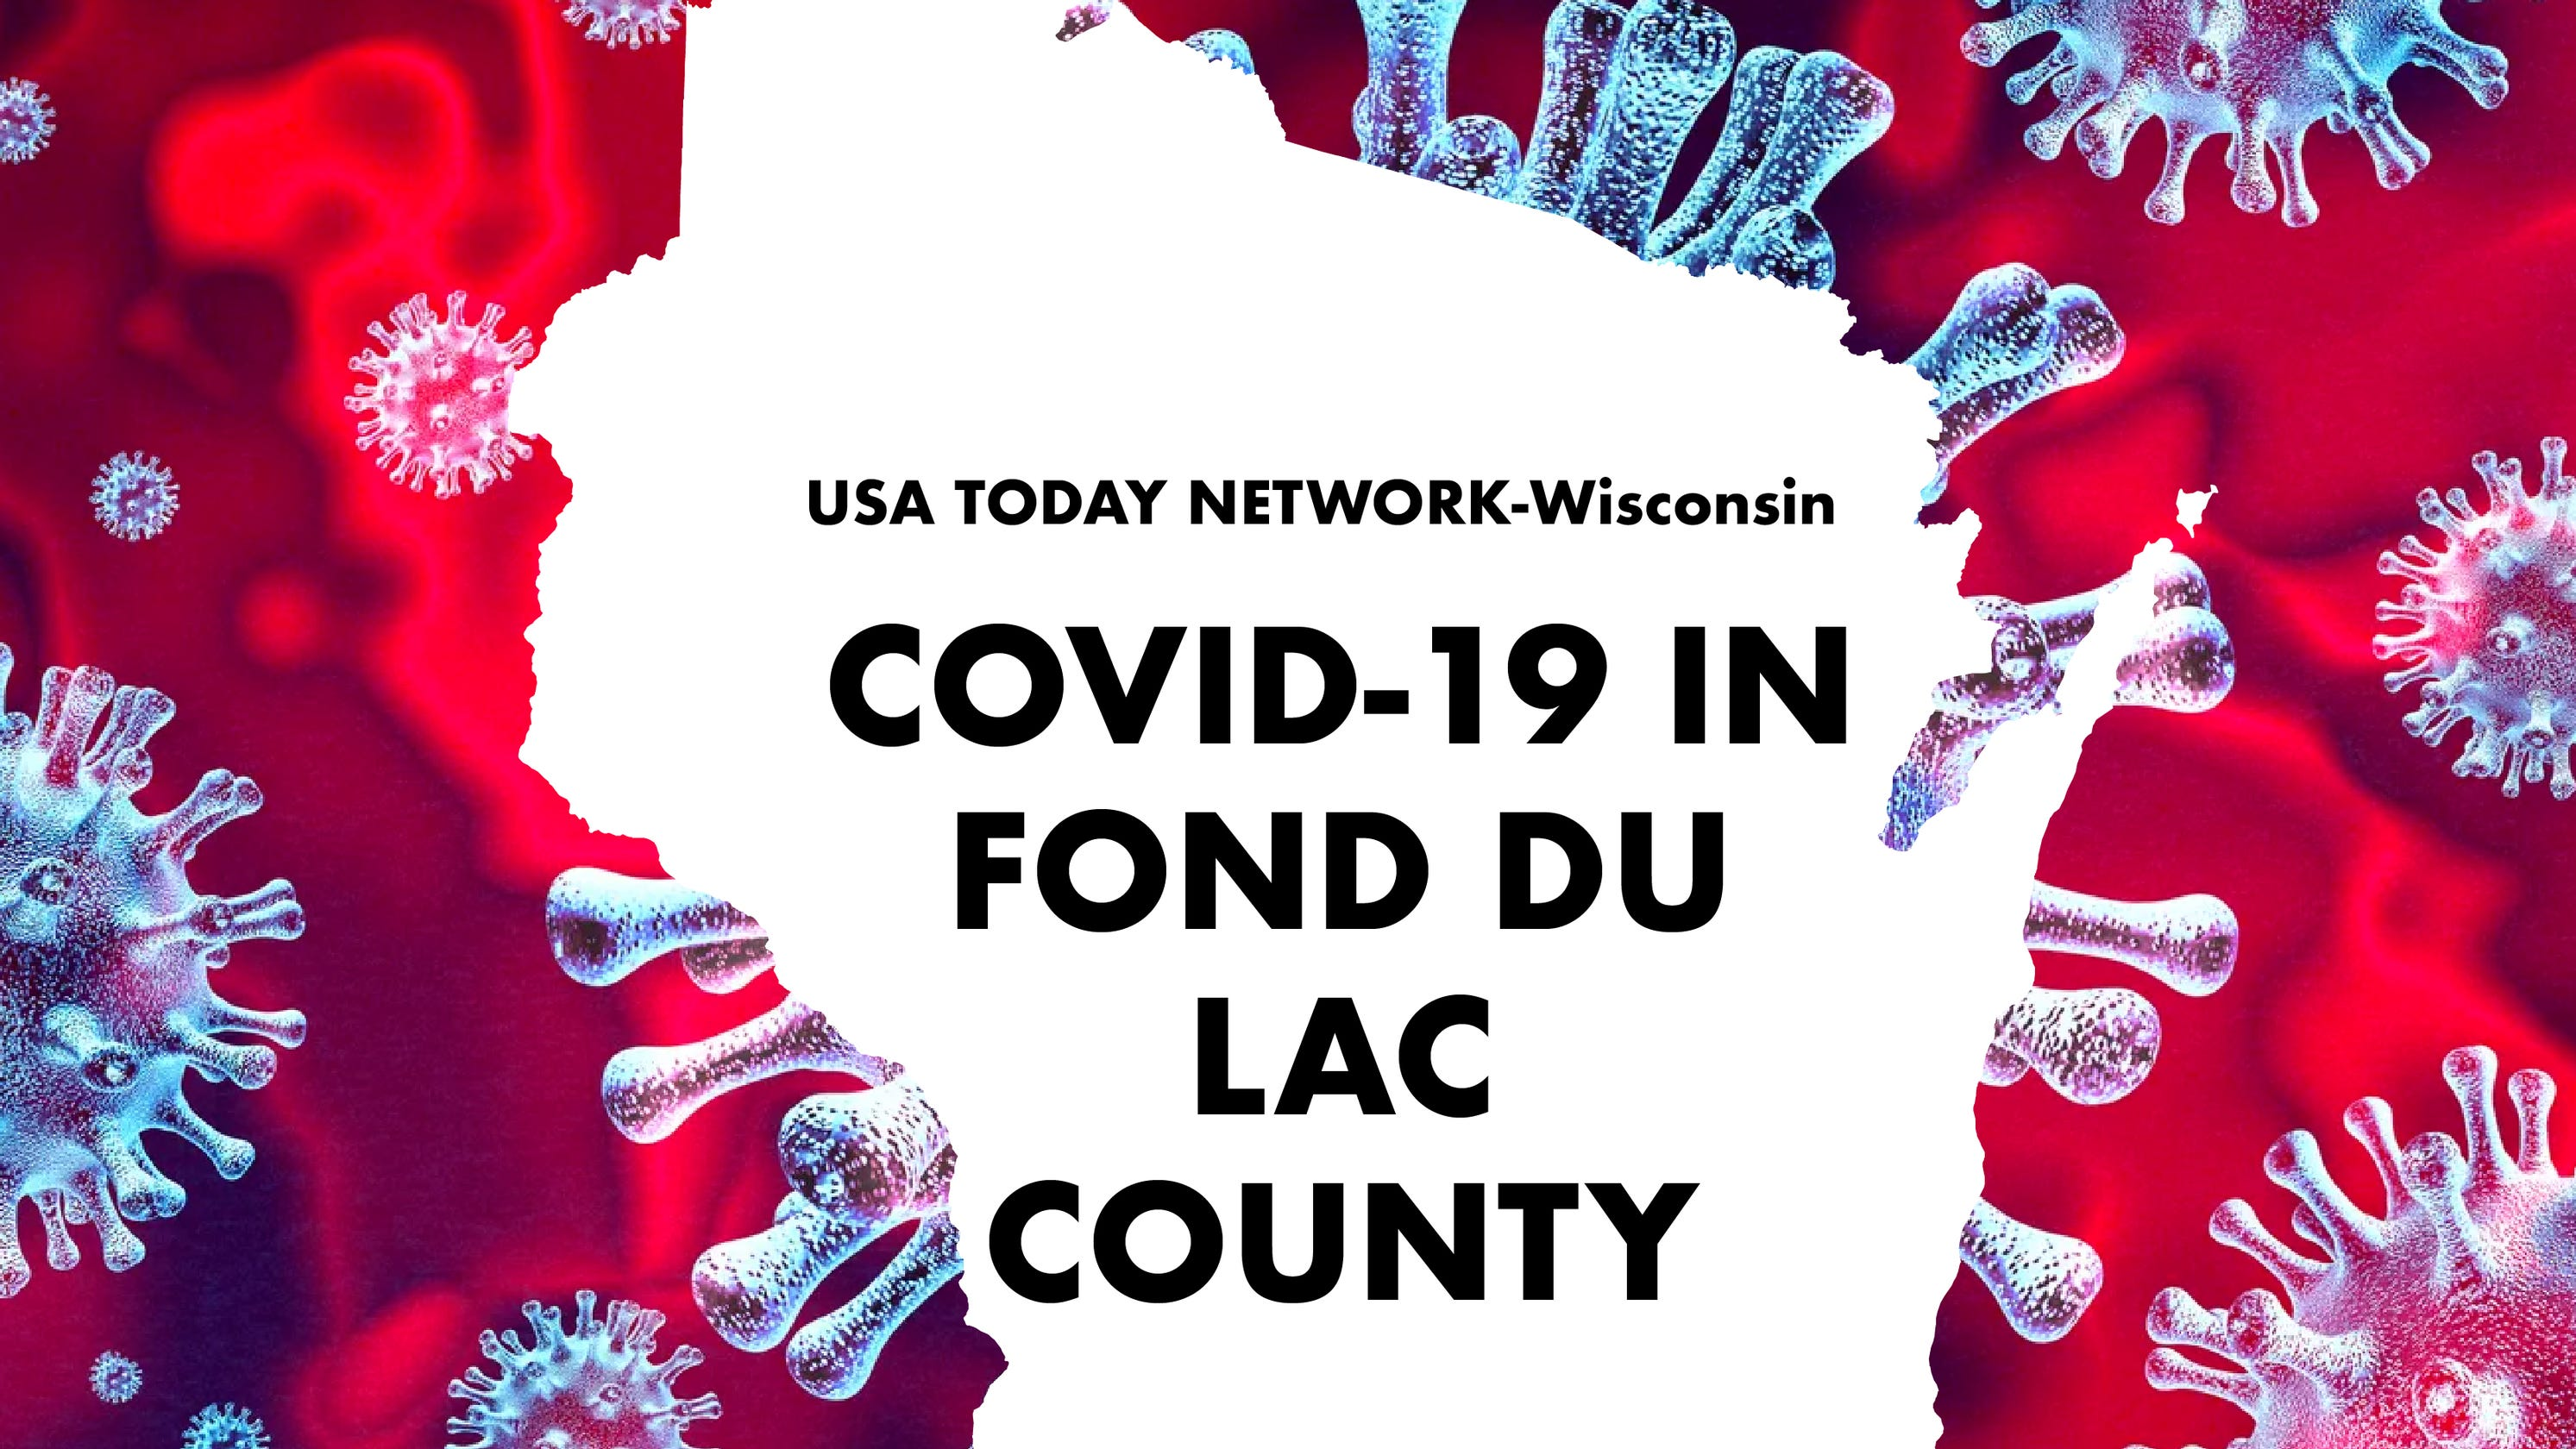 Department of Health Services reports two more COVID-19 deaths in Fond du Lac County